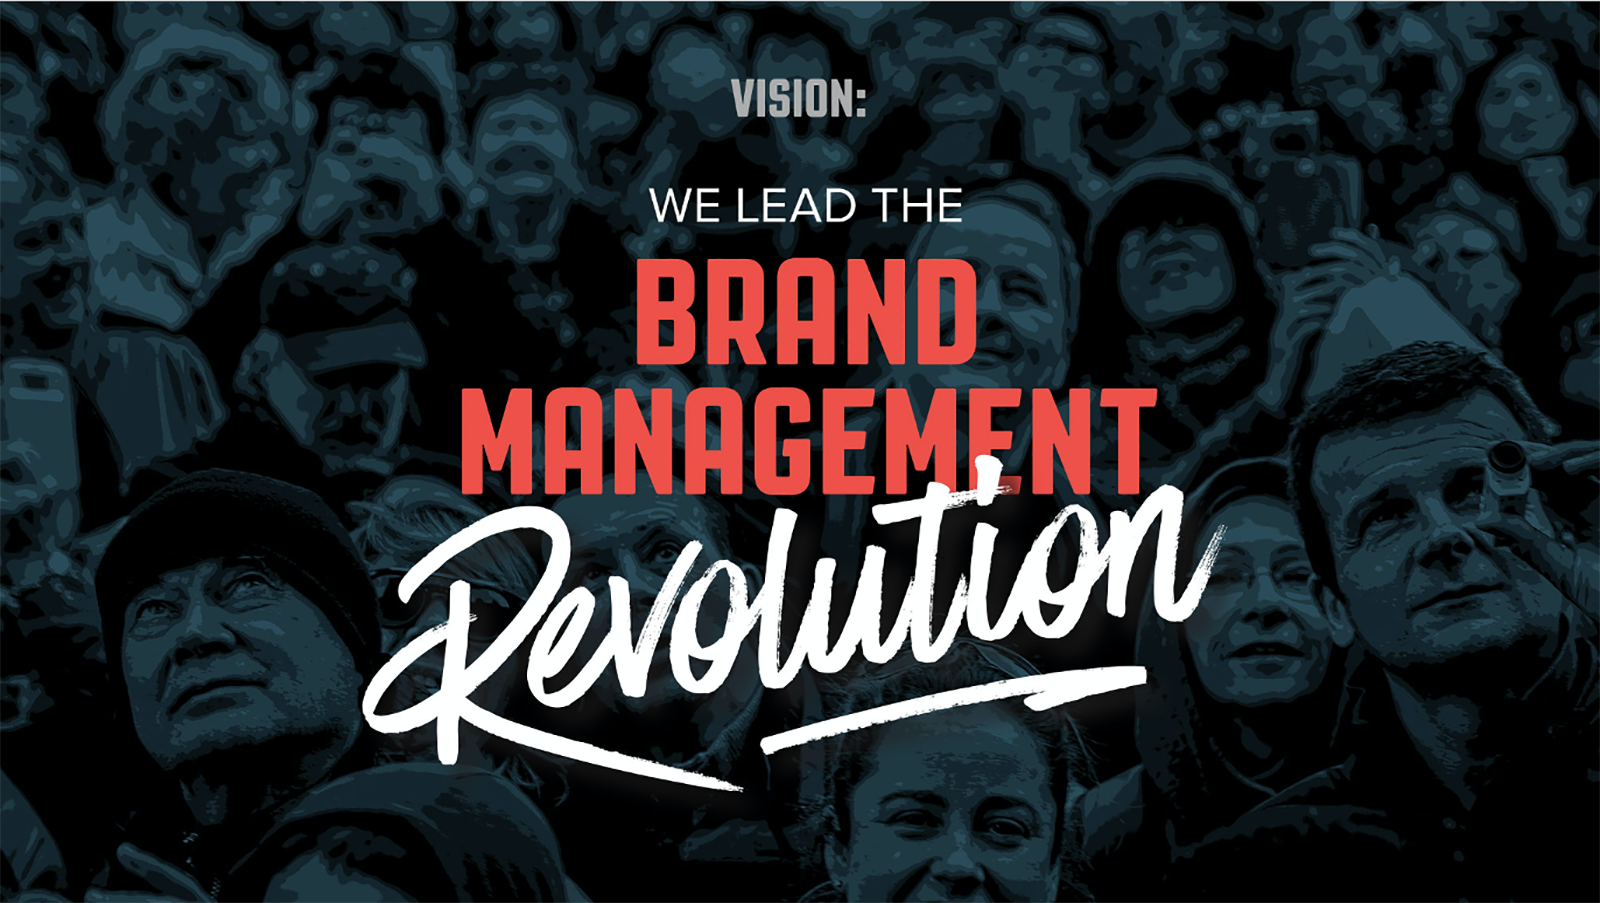 Leading the Brand Management Revolution